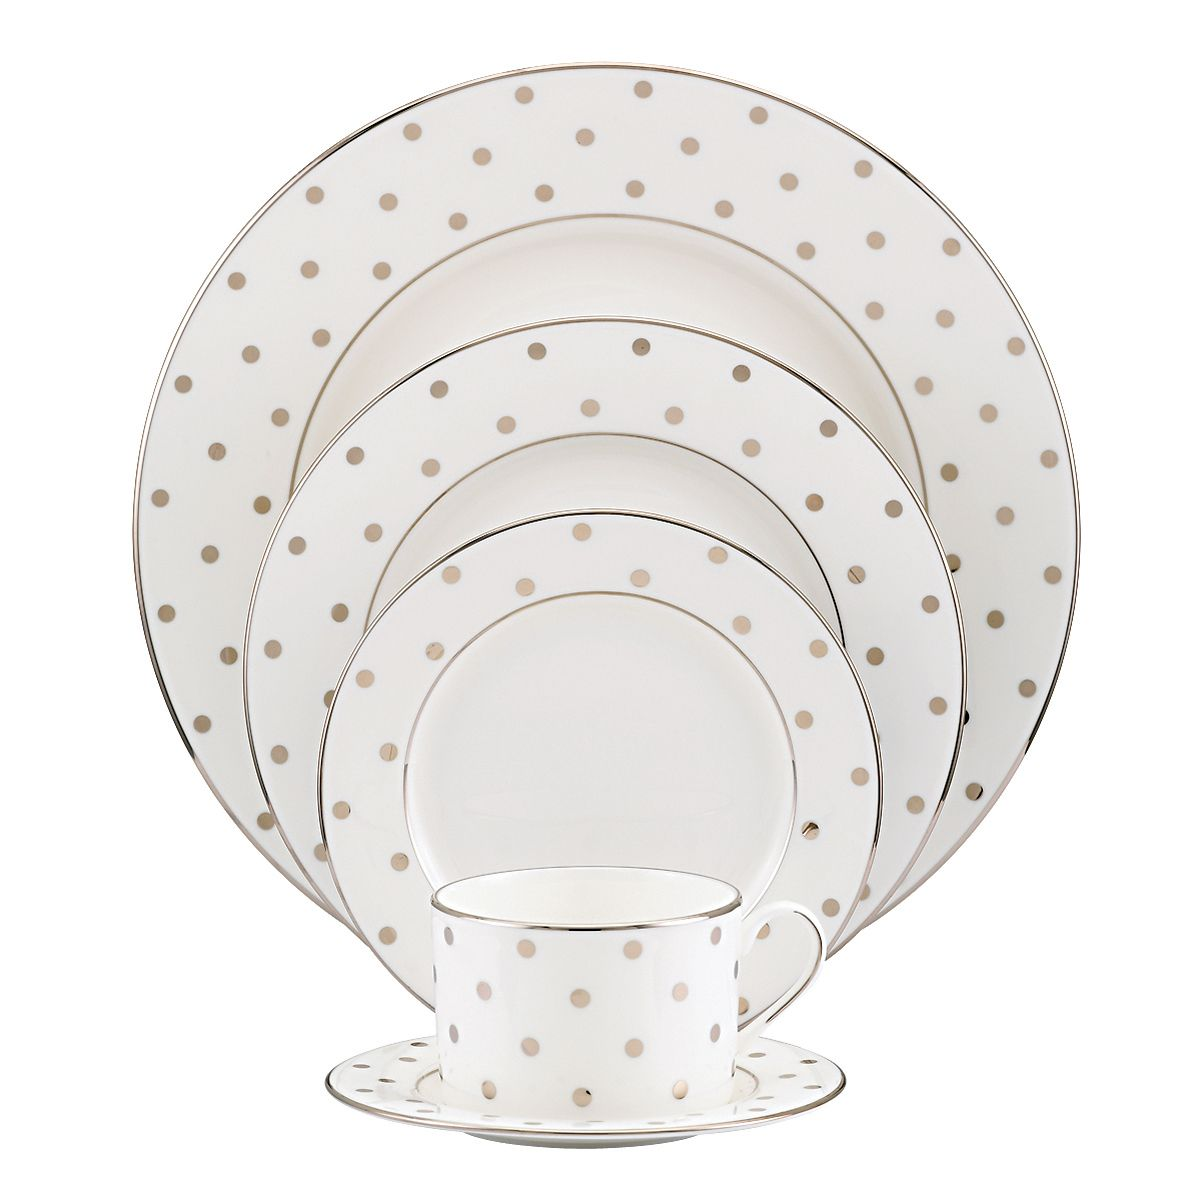 Larabee Road 5 Piece Place Setting by Kate Spade New York